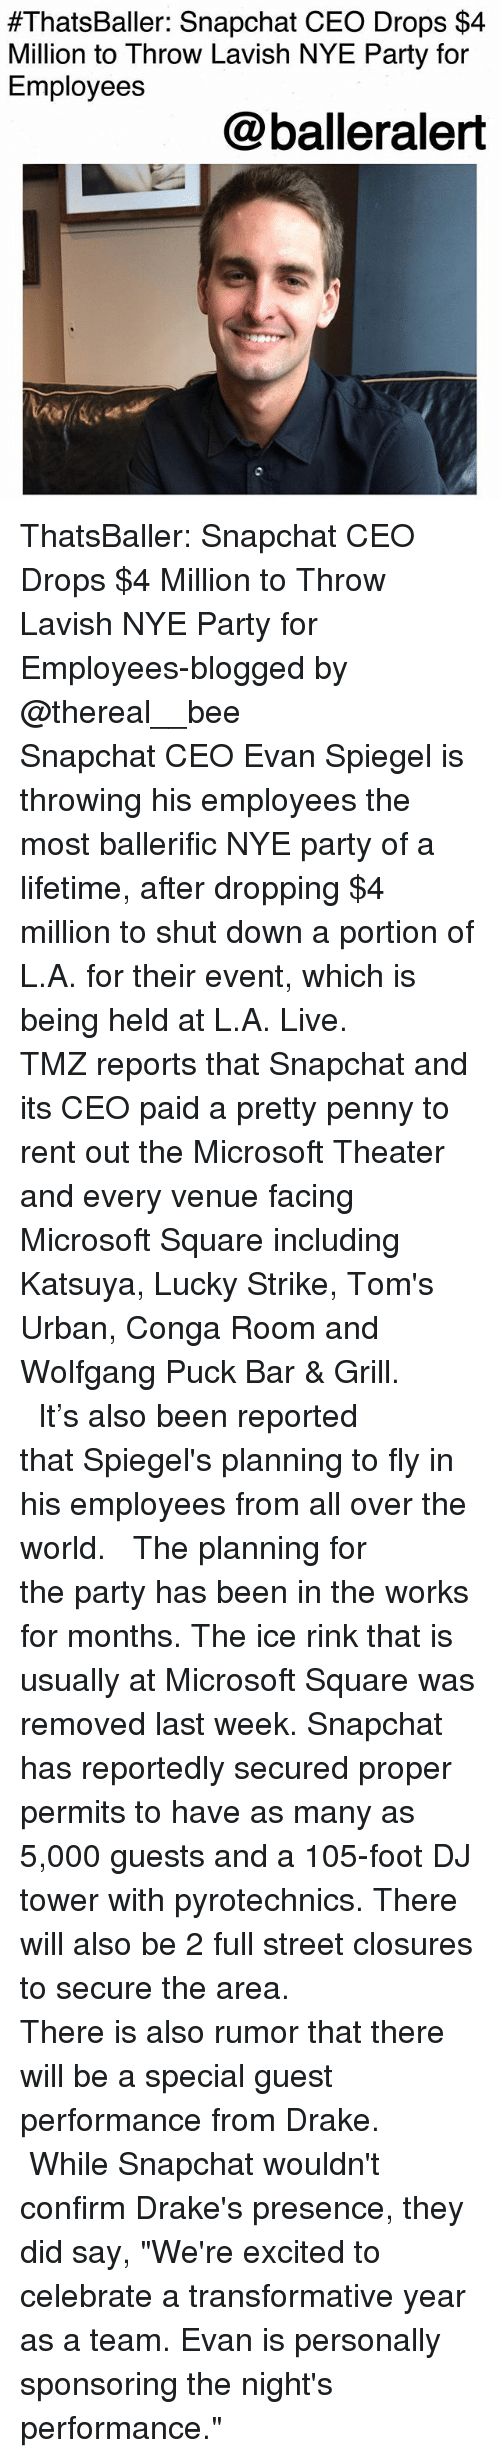 """Drake, Memes, and Microsoft:  #ThatsBaller: Snapchat CEO Drops $4  Million to Throw Lavish NYE Party for  Employees  @balleralert ThatsBaller: Snapchat CEO Drops $4 Million to Throw Lavish NYE Party for Employees-blogged by @thereal__bee ⠀⠀⠀⠀⠀⠀⠀⠀⠀ ⠀⠀ Snapchat CEO Evan Spiegel is throwing his employees the most ballerific NYE party of a lifetime, after dropping $4 million to shut down a portion of L.A. for their event, which is being held at L.A. Live. ⠀⠀⠀⠀⠀⠀⠀⠀⠀ ⠀⠀ TMZ reports that Snapchat and its CEO paid a pretty penny to rent out the Microsoft Theater and every venue facing Microsoft Square including Katsuya, Lucky Strike, Tom's Urban, Conga Room and Wolfgang Puck Bar & Grill. ⠀⠀⠀⠀⠀⠀⠀⠀⠀ ⠀⠀ It's also been reported that Spiegel's planning to fly in his employees from all over the world. ⠀⠀⠀⠀⠀⠀⠀⠀⠀ ⠀⠀ The planning for the party has been in the works for months. The ice rink that is usually at Microsoft Square was removed last week. Snapchat has reportedly secured proper permits to have as many as 5,000 guests and a 105-foot DJ tower with pyrotechnics. There will also be 2 full street closures to secure the area. ⠀⠀⠀⠀⠀⠀⠀⠀⠀ ⠀⠀ There is also rumor that there will be a special guest performance from Drake. ⠀⠀⠀⠀⠀⠀⠀⠀⠀ ⠀⠀ While Snapchat wouldn't confirm Drake's presence, they did say, """"We're excited to celebrate a transformative year as a team. Evan is personally sponsoring the night's performance."""""""